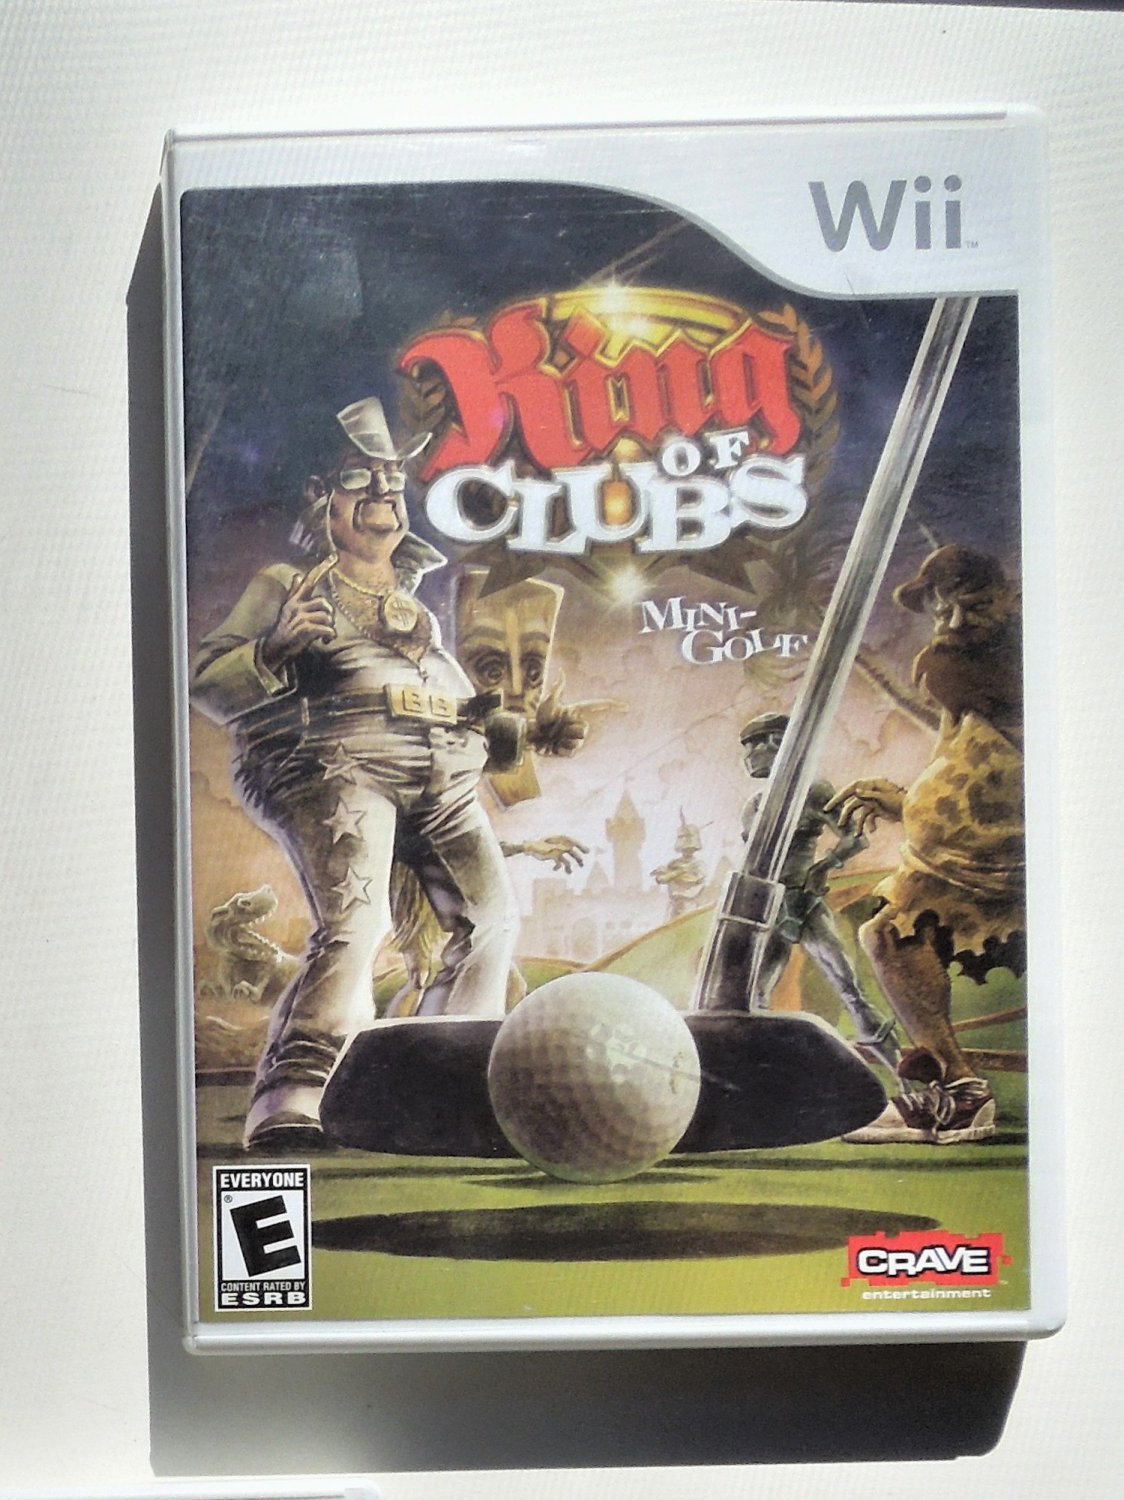 2008 Crave King Of Clubs For Nintendo Wii Game Systems